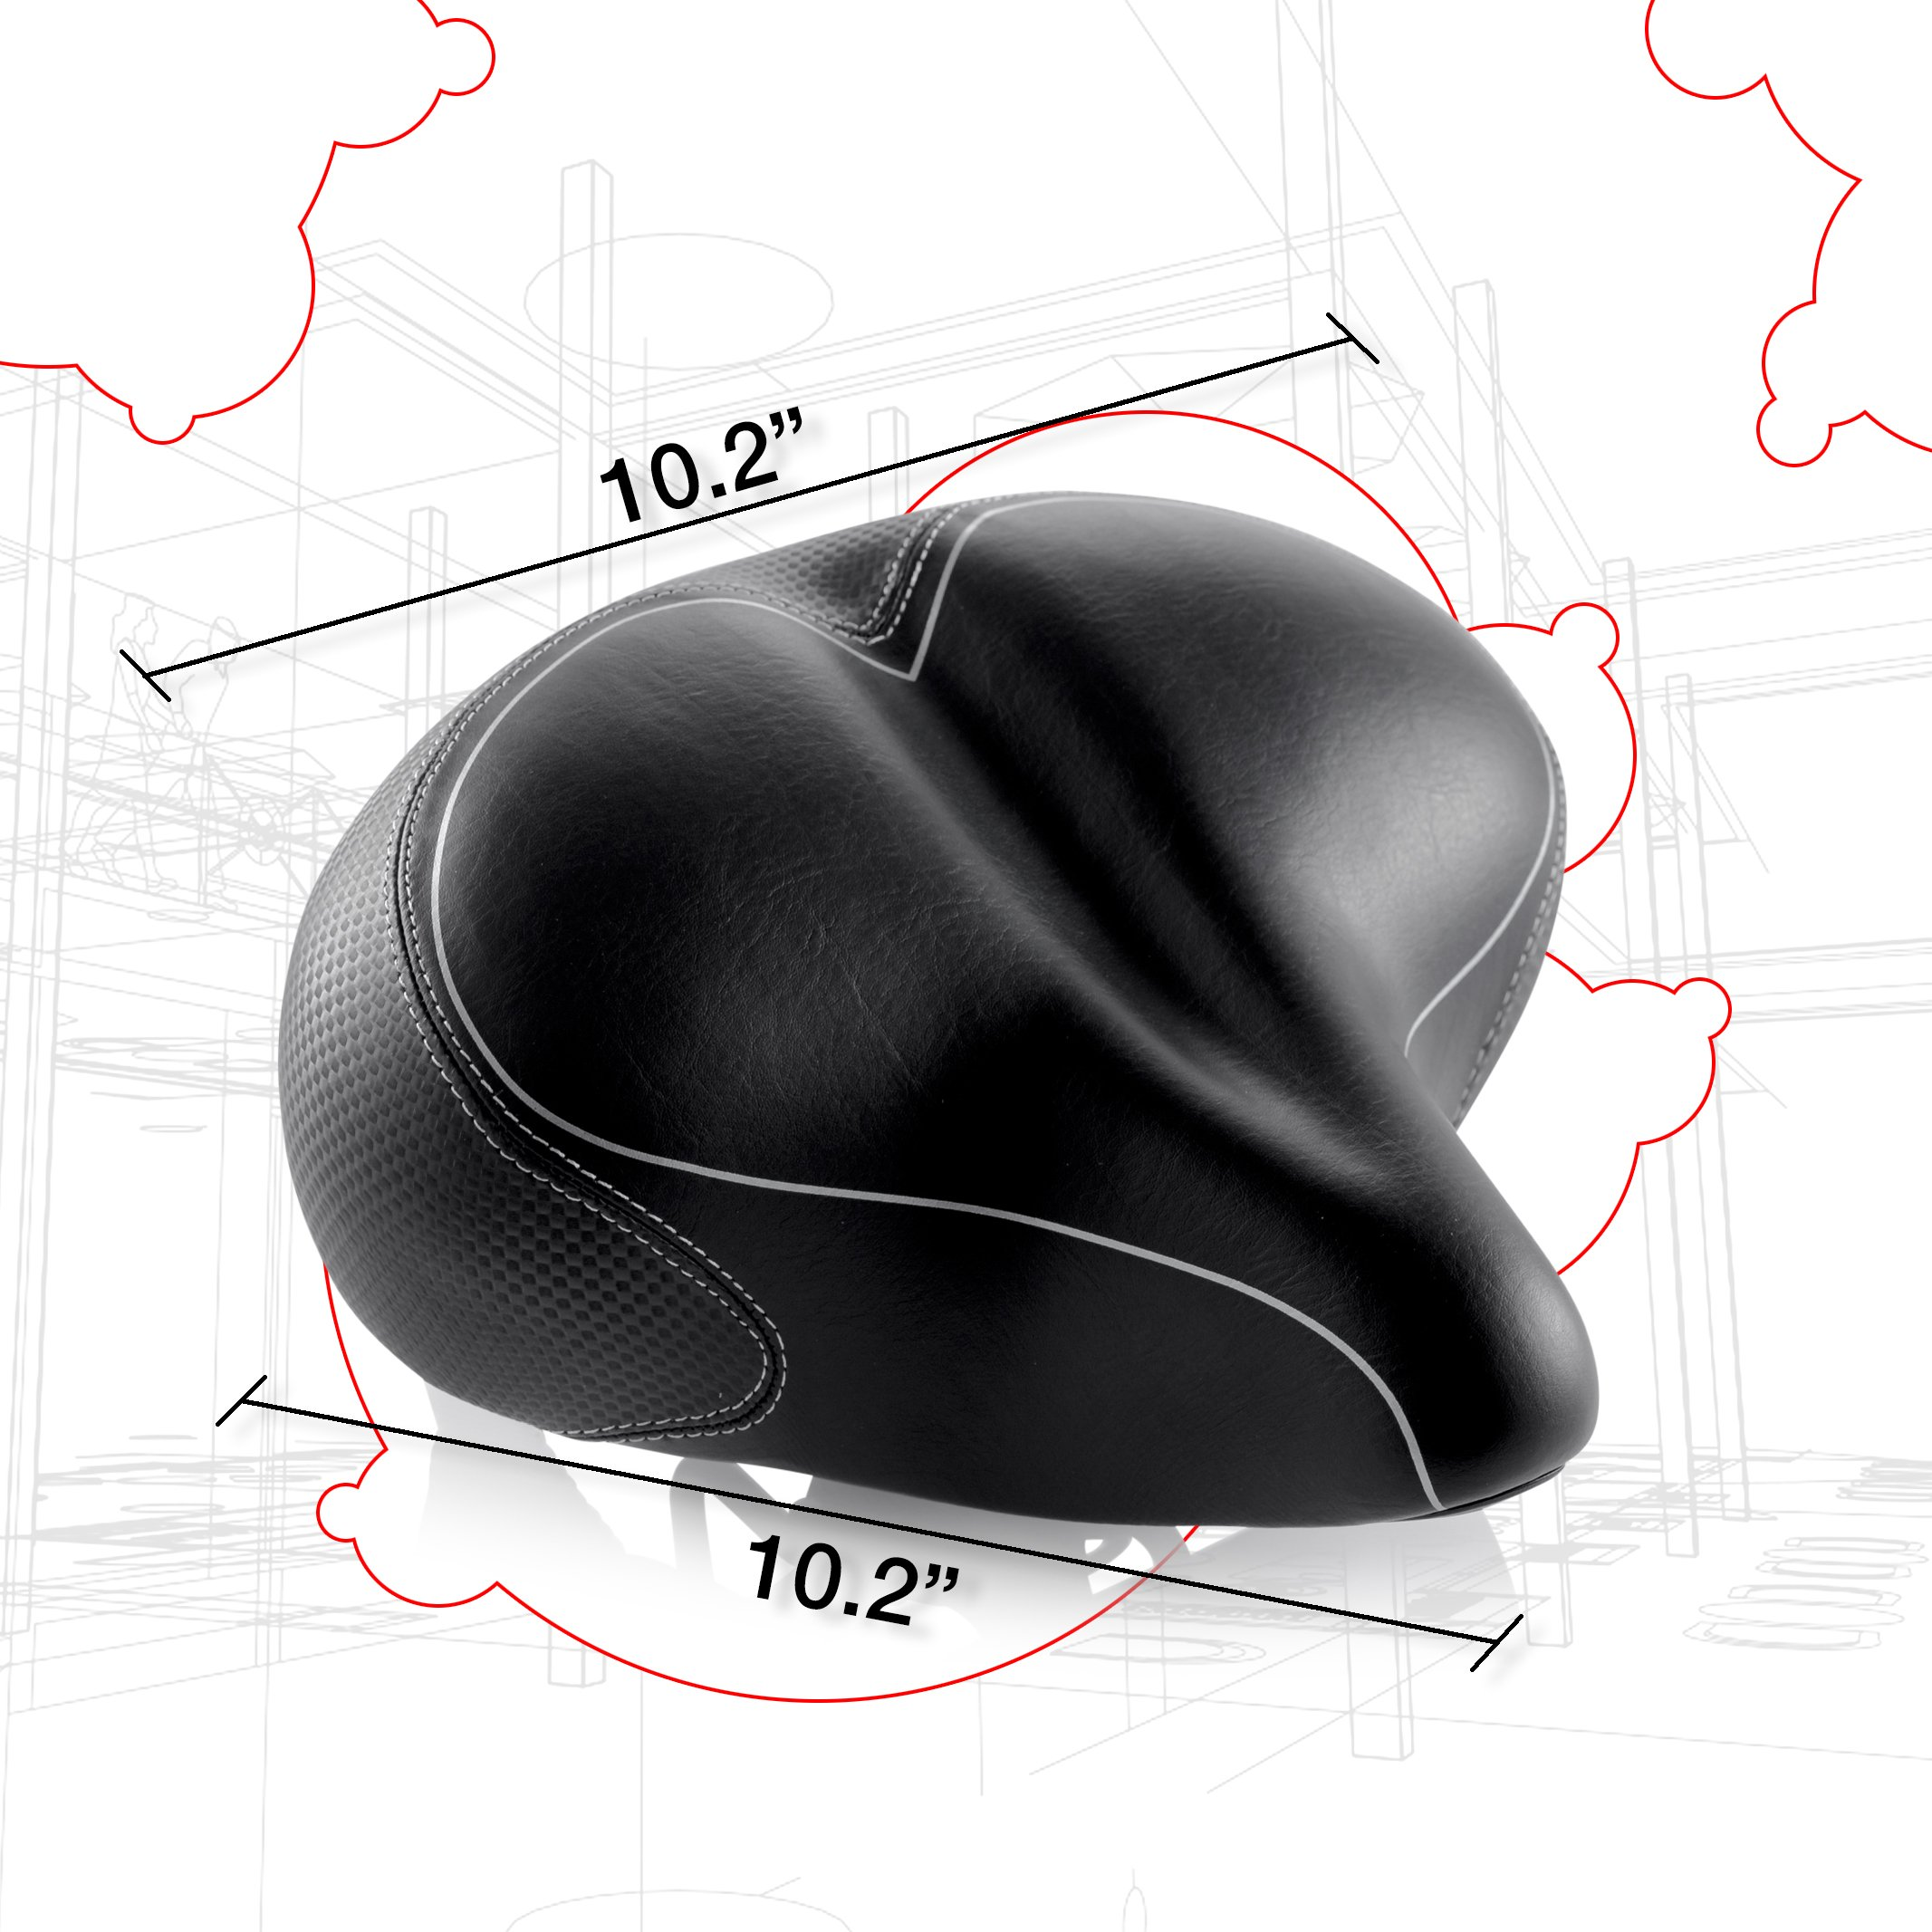 Oversized Comfort Bike Seat Most Comfortable Replacement Bicycle Saddle for Cycling | Universal Fit for Outdoor Exercise Bikes & Indoor Spin Bikes | Wide Soft Padded Bike Saddle For Women and Men by Asani (Image #7)